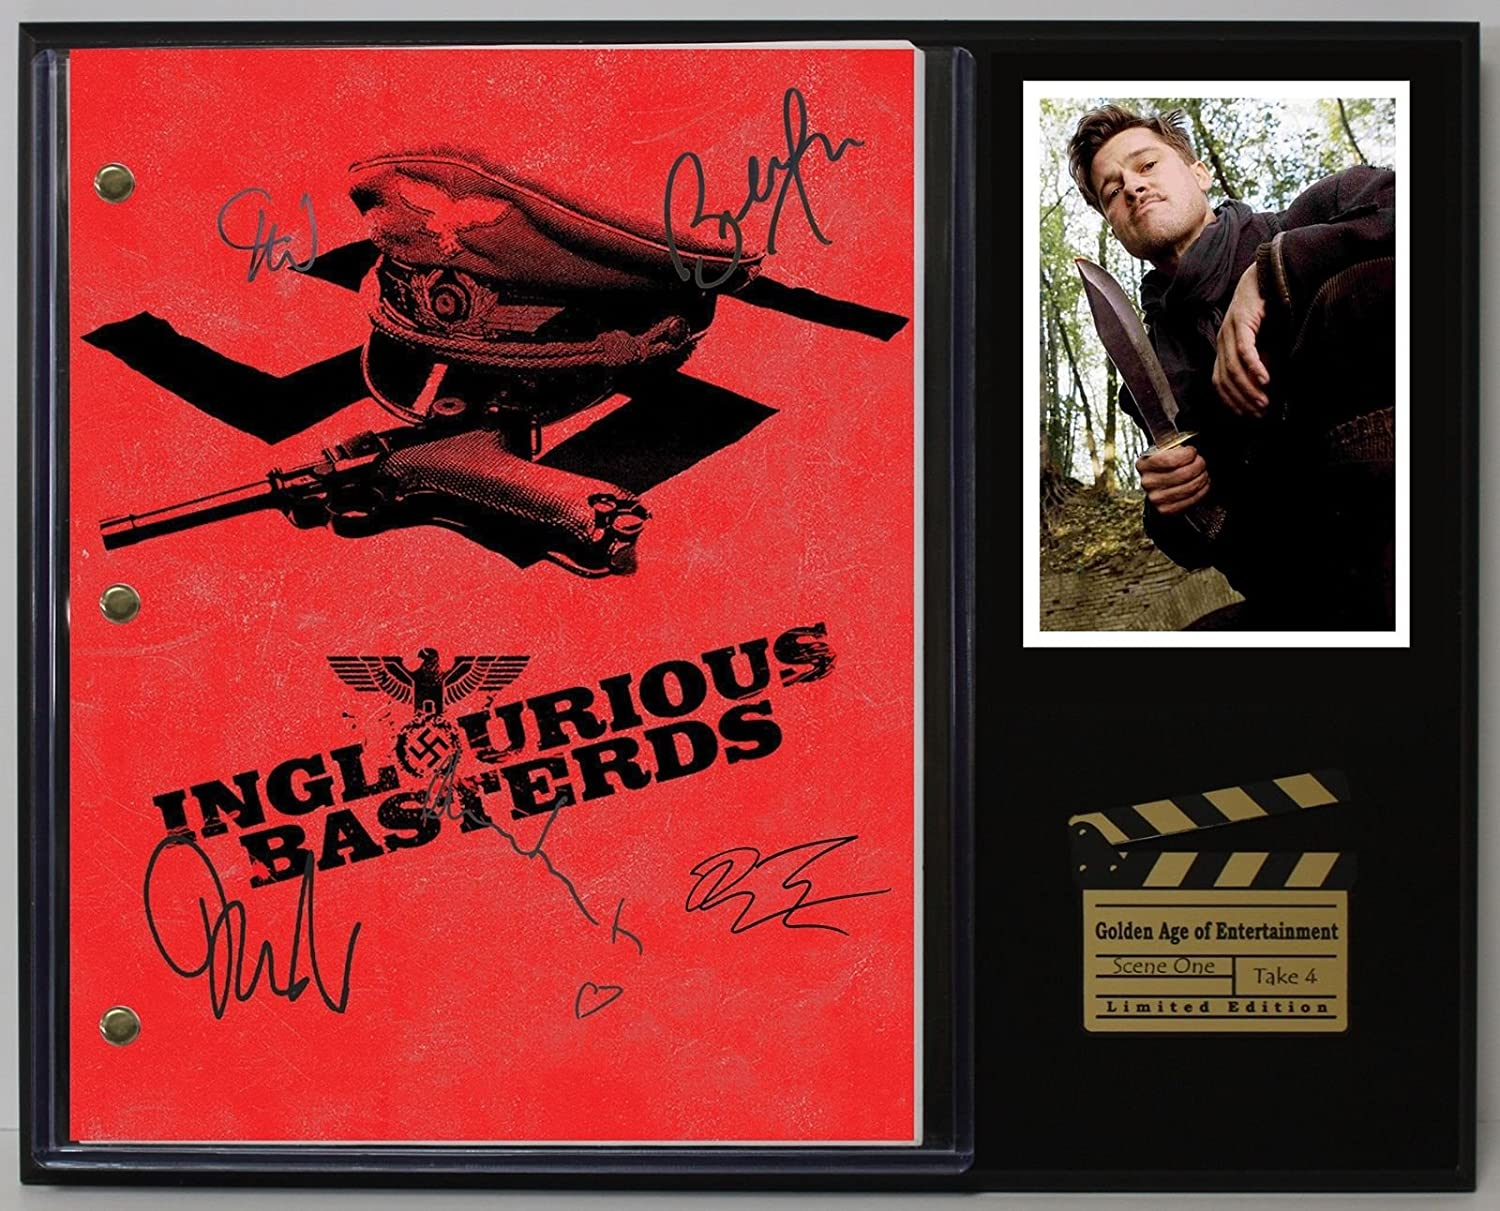 Inglorious Basterds Ltd Edition Reproduction Movie Script Cinema Display C3